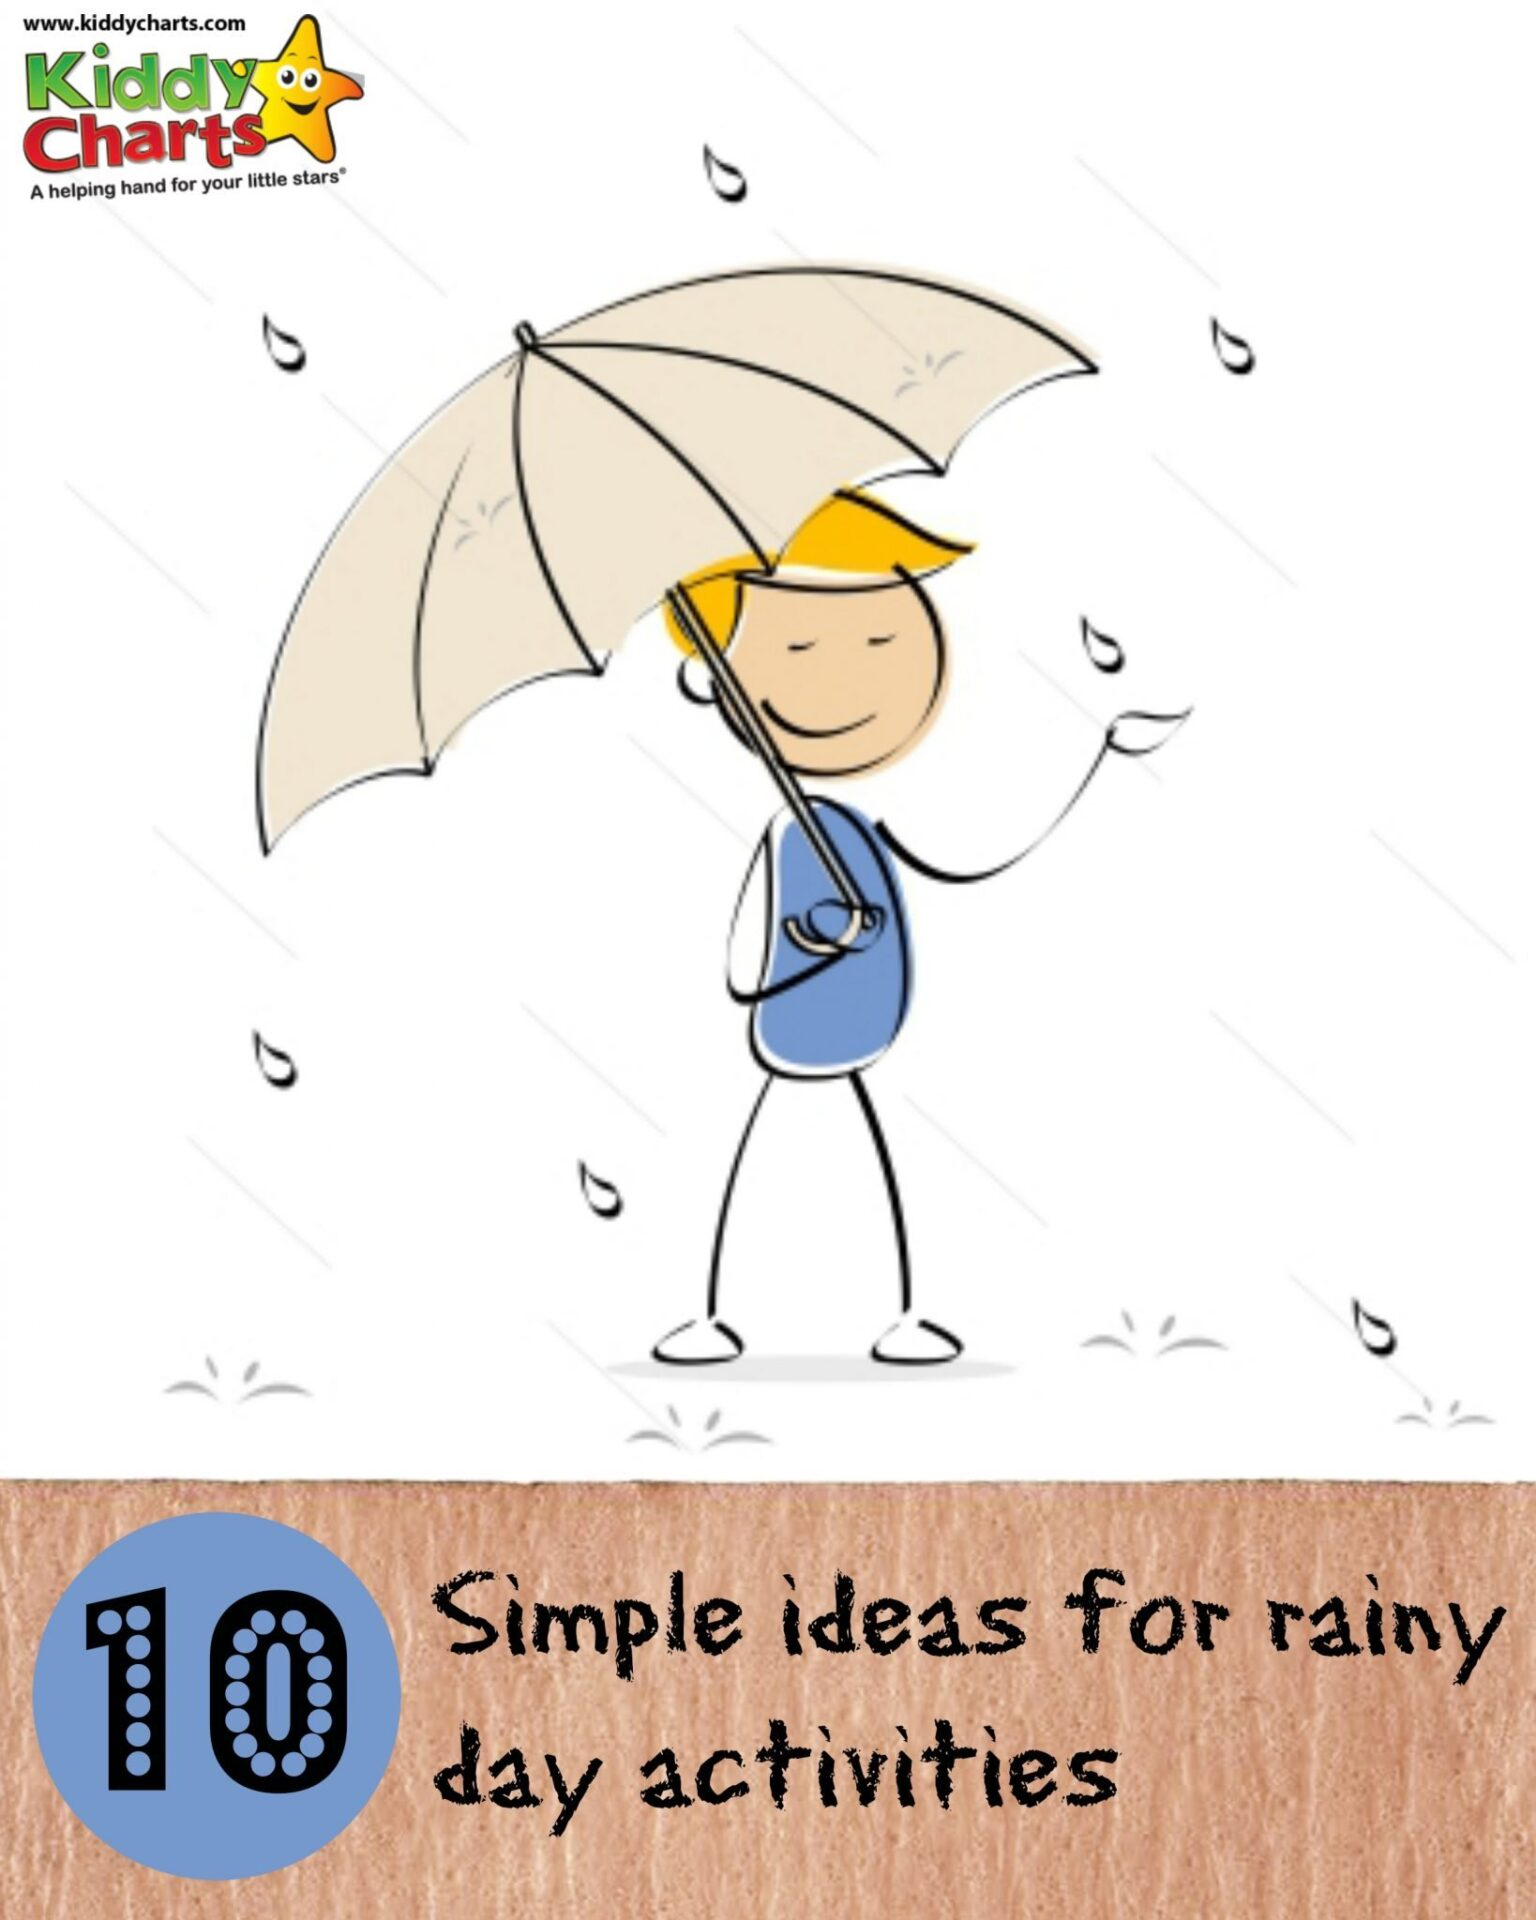 Sometimes we find it hard to come up with Rainy Day activities: here are some simple ideas to get you started, and some sites for inspiration. So GO!